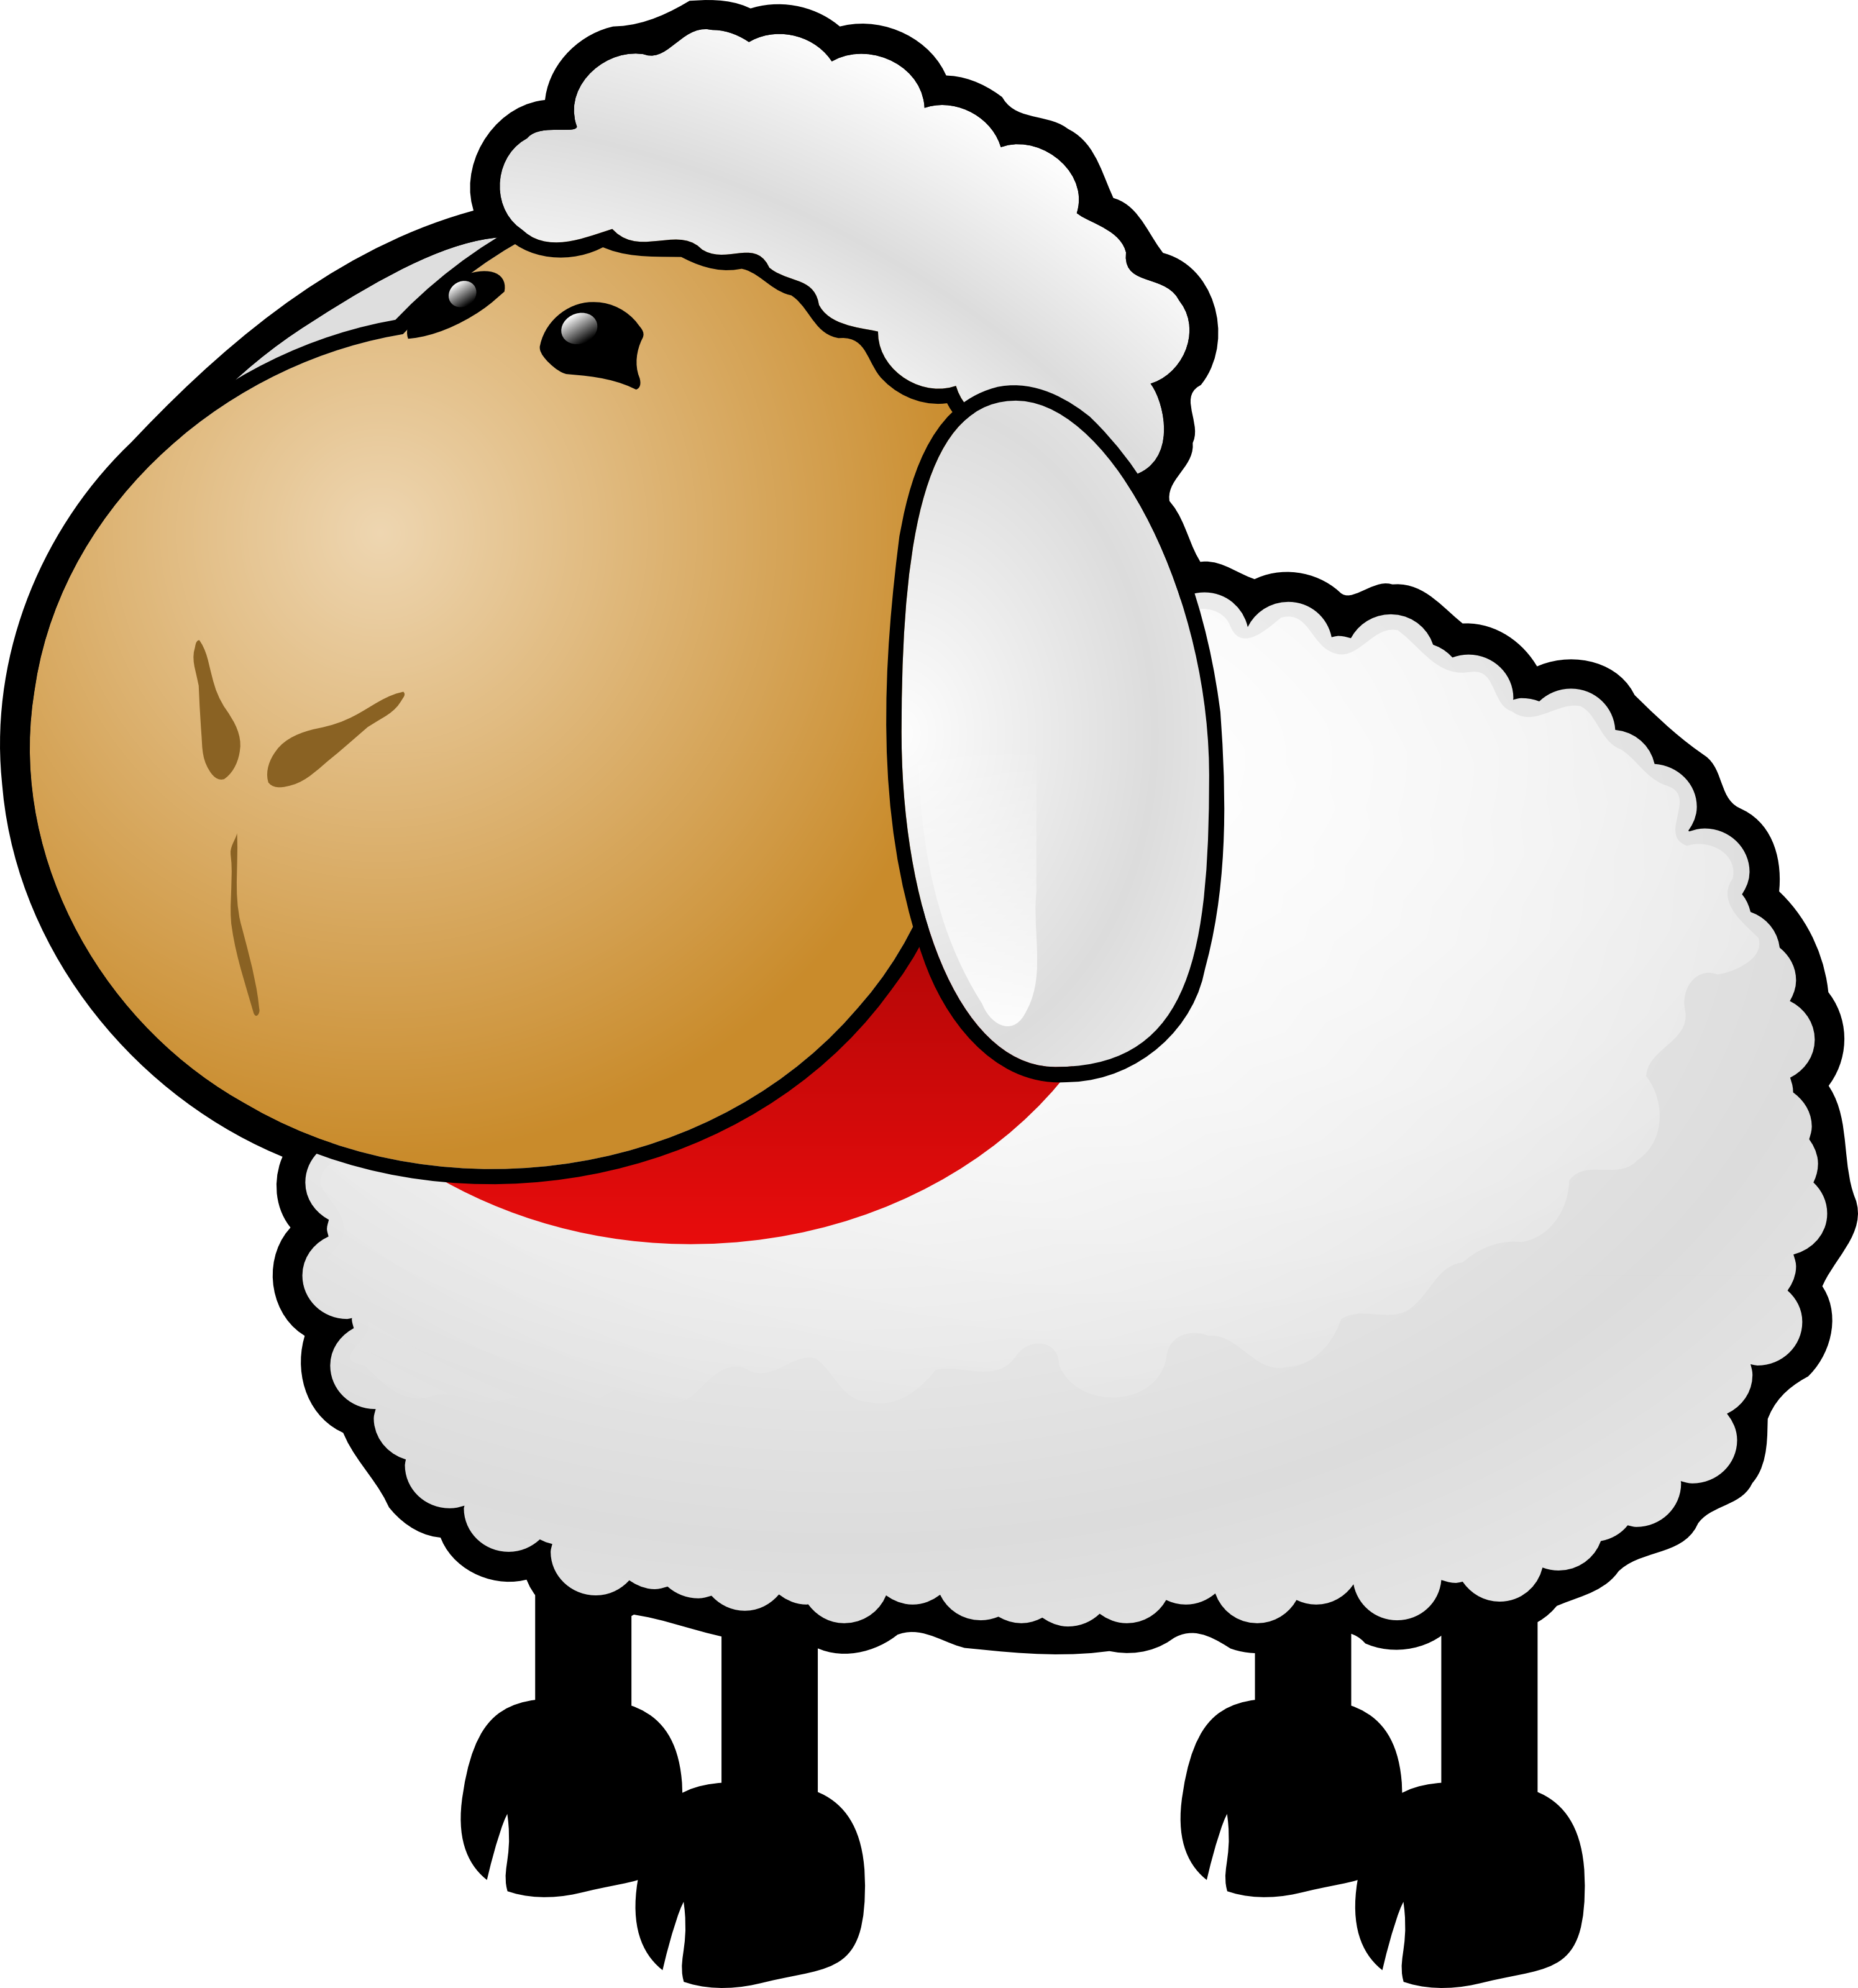 Free download of icon. Footprint clipart sheep